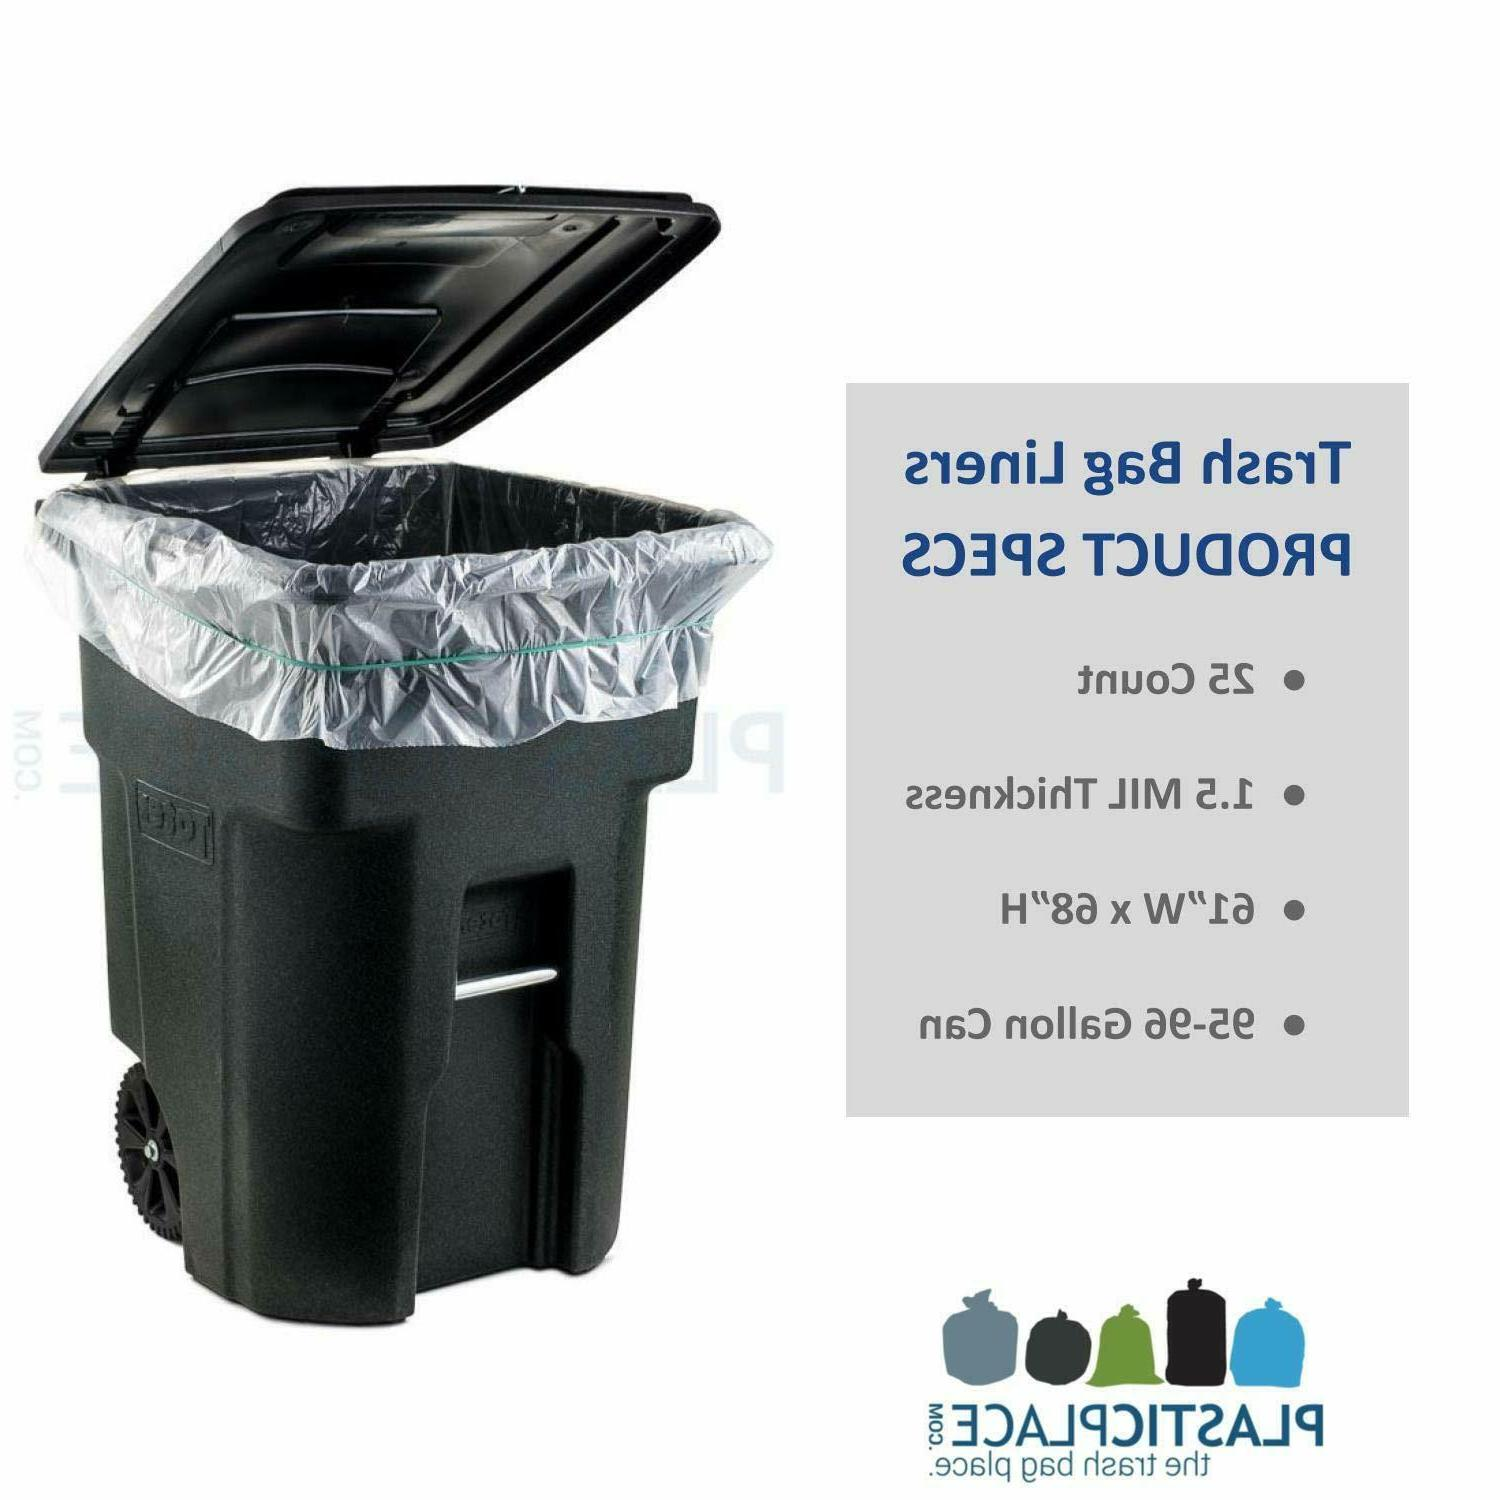 95-96 Garbage Liners 1.5 Mil Clear Heavy Duty